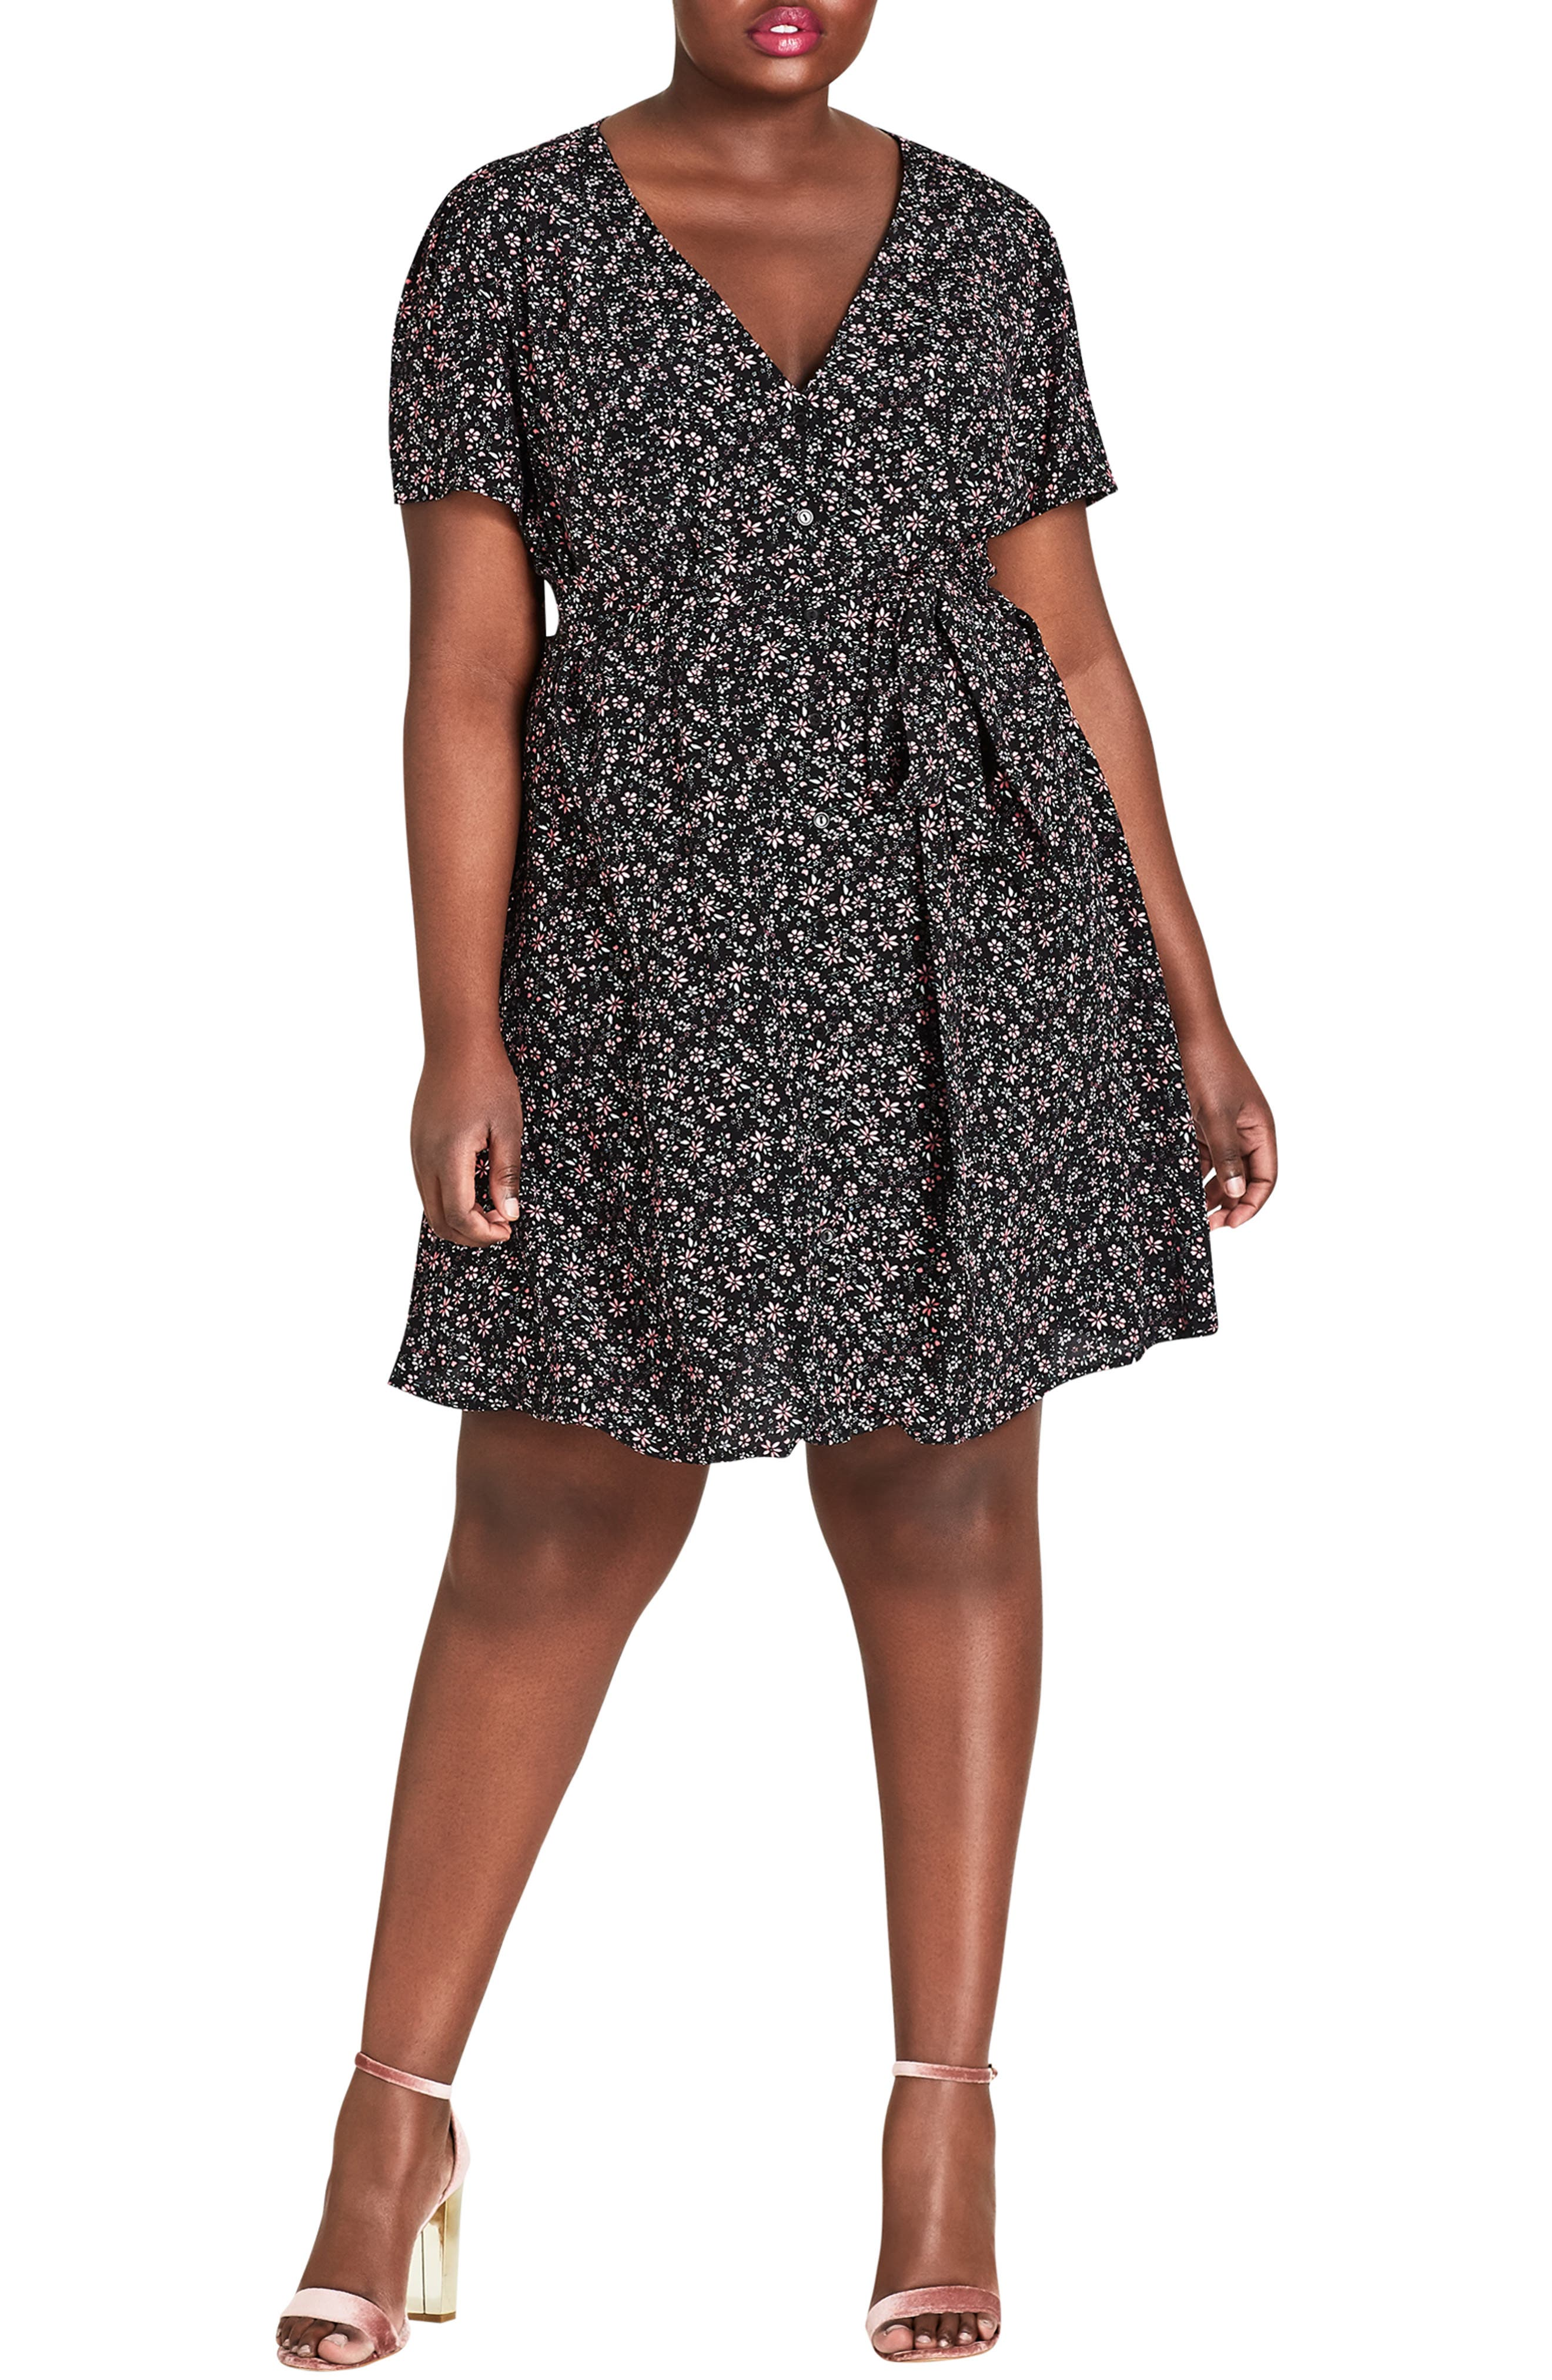 Plus Size City Chic Floral Ditsy Fit & Flare Dress